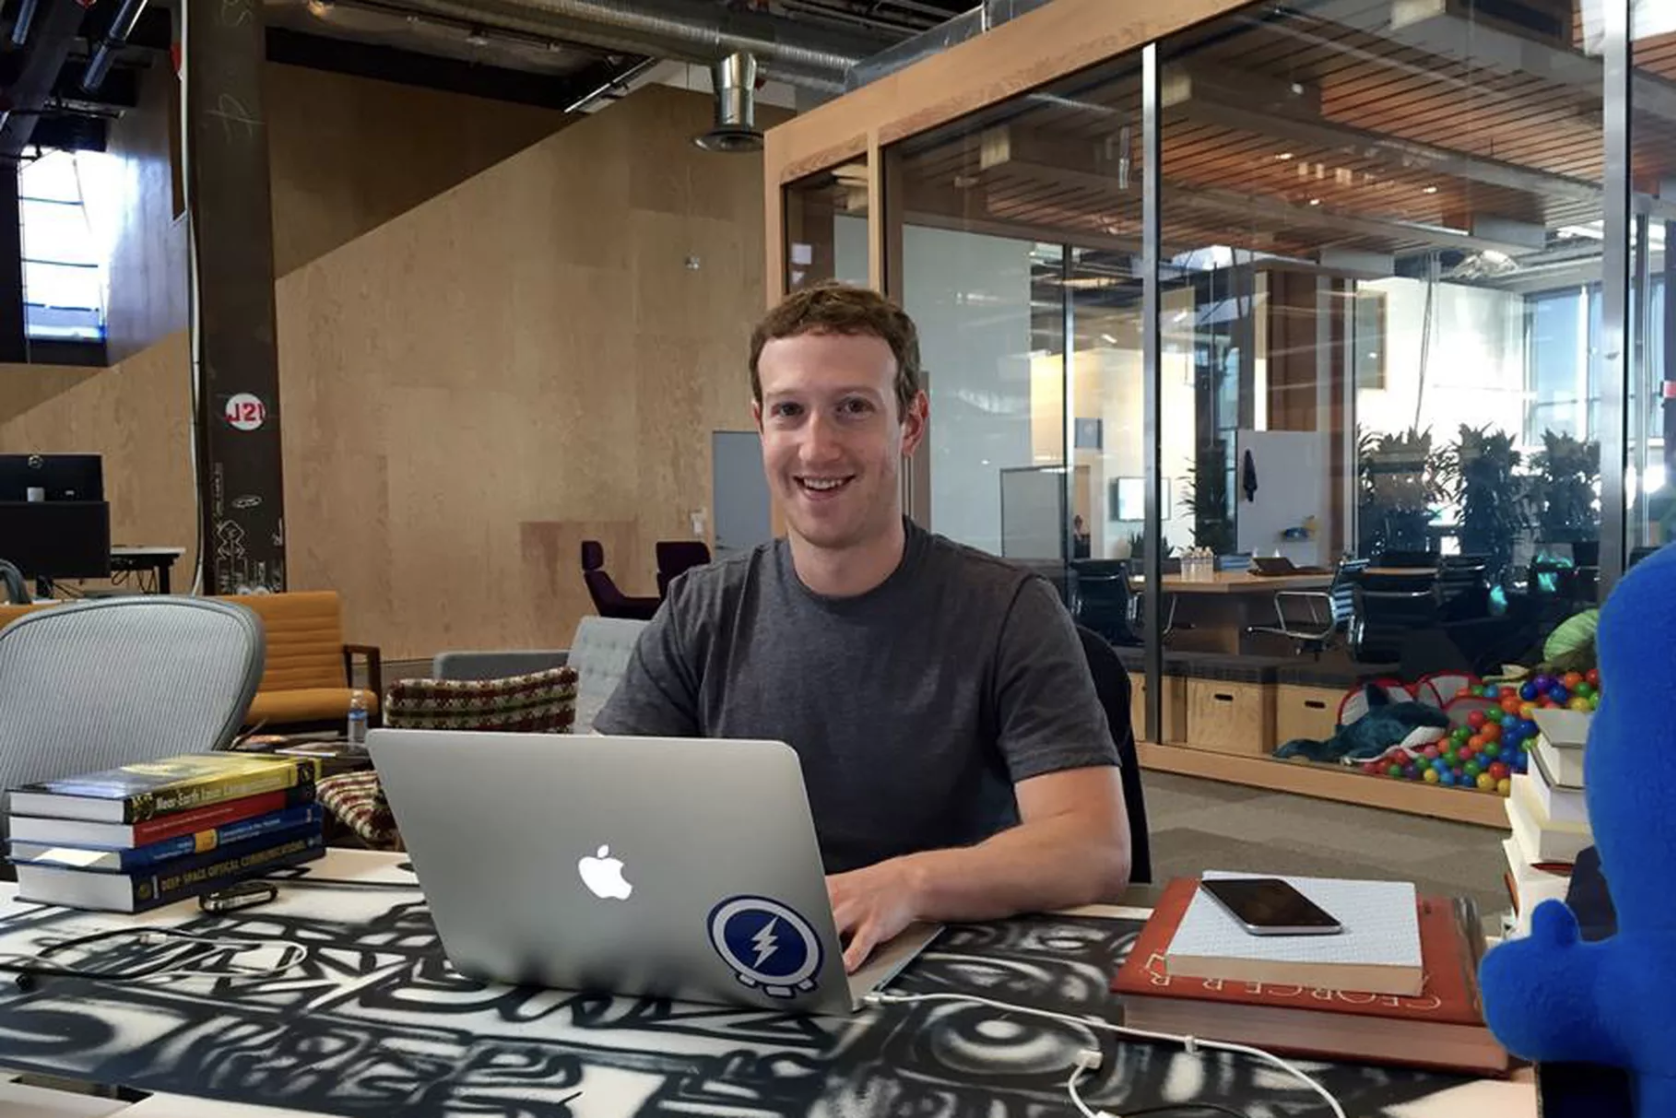 Mark Zuckerberg sitting at his desk painted by artist David Choe at Facebook HQ